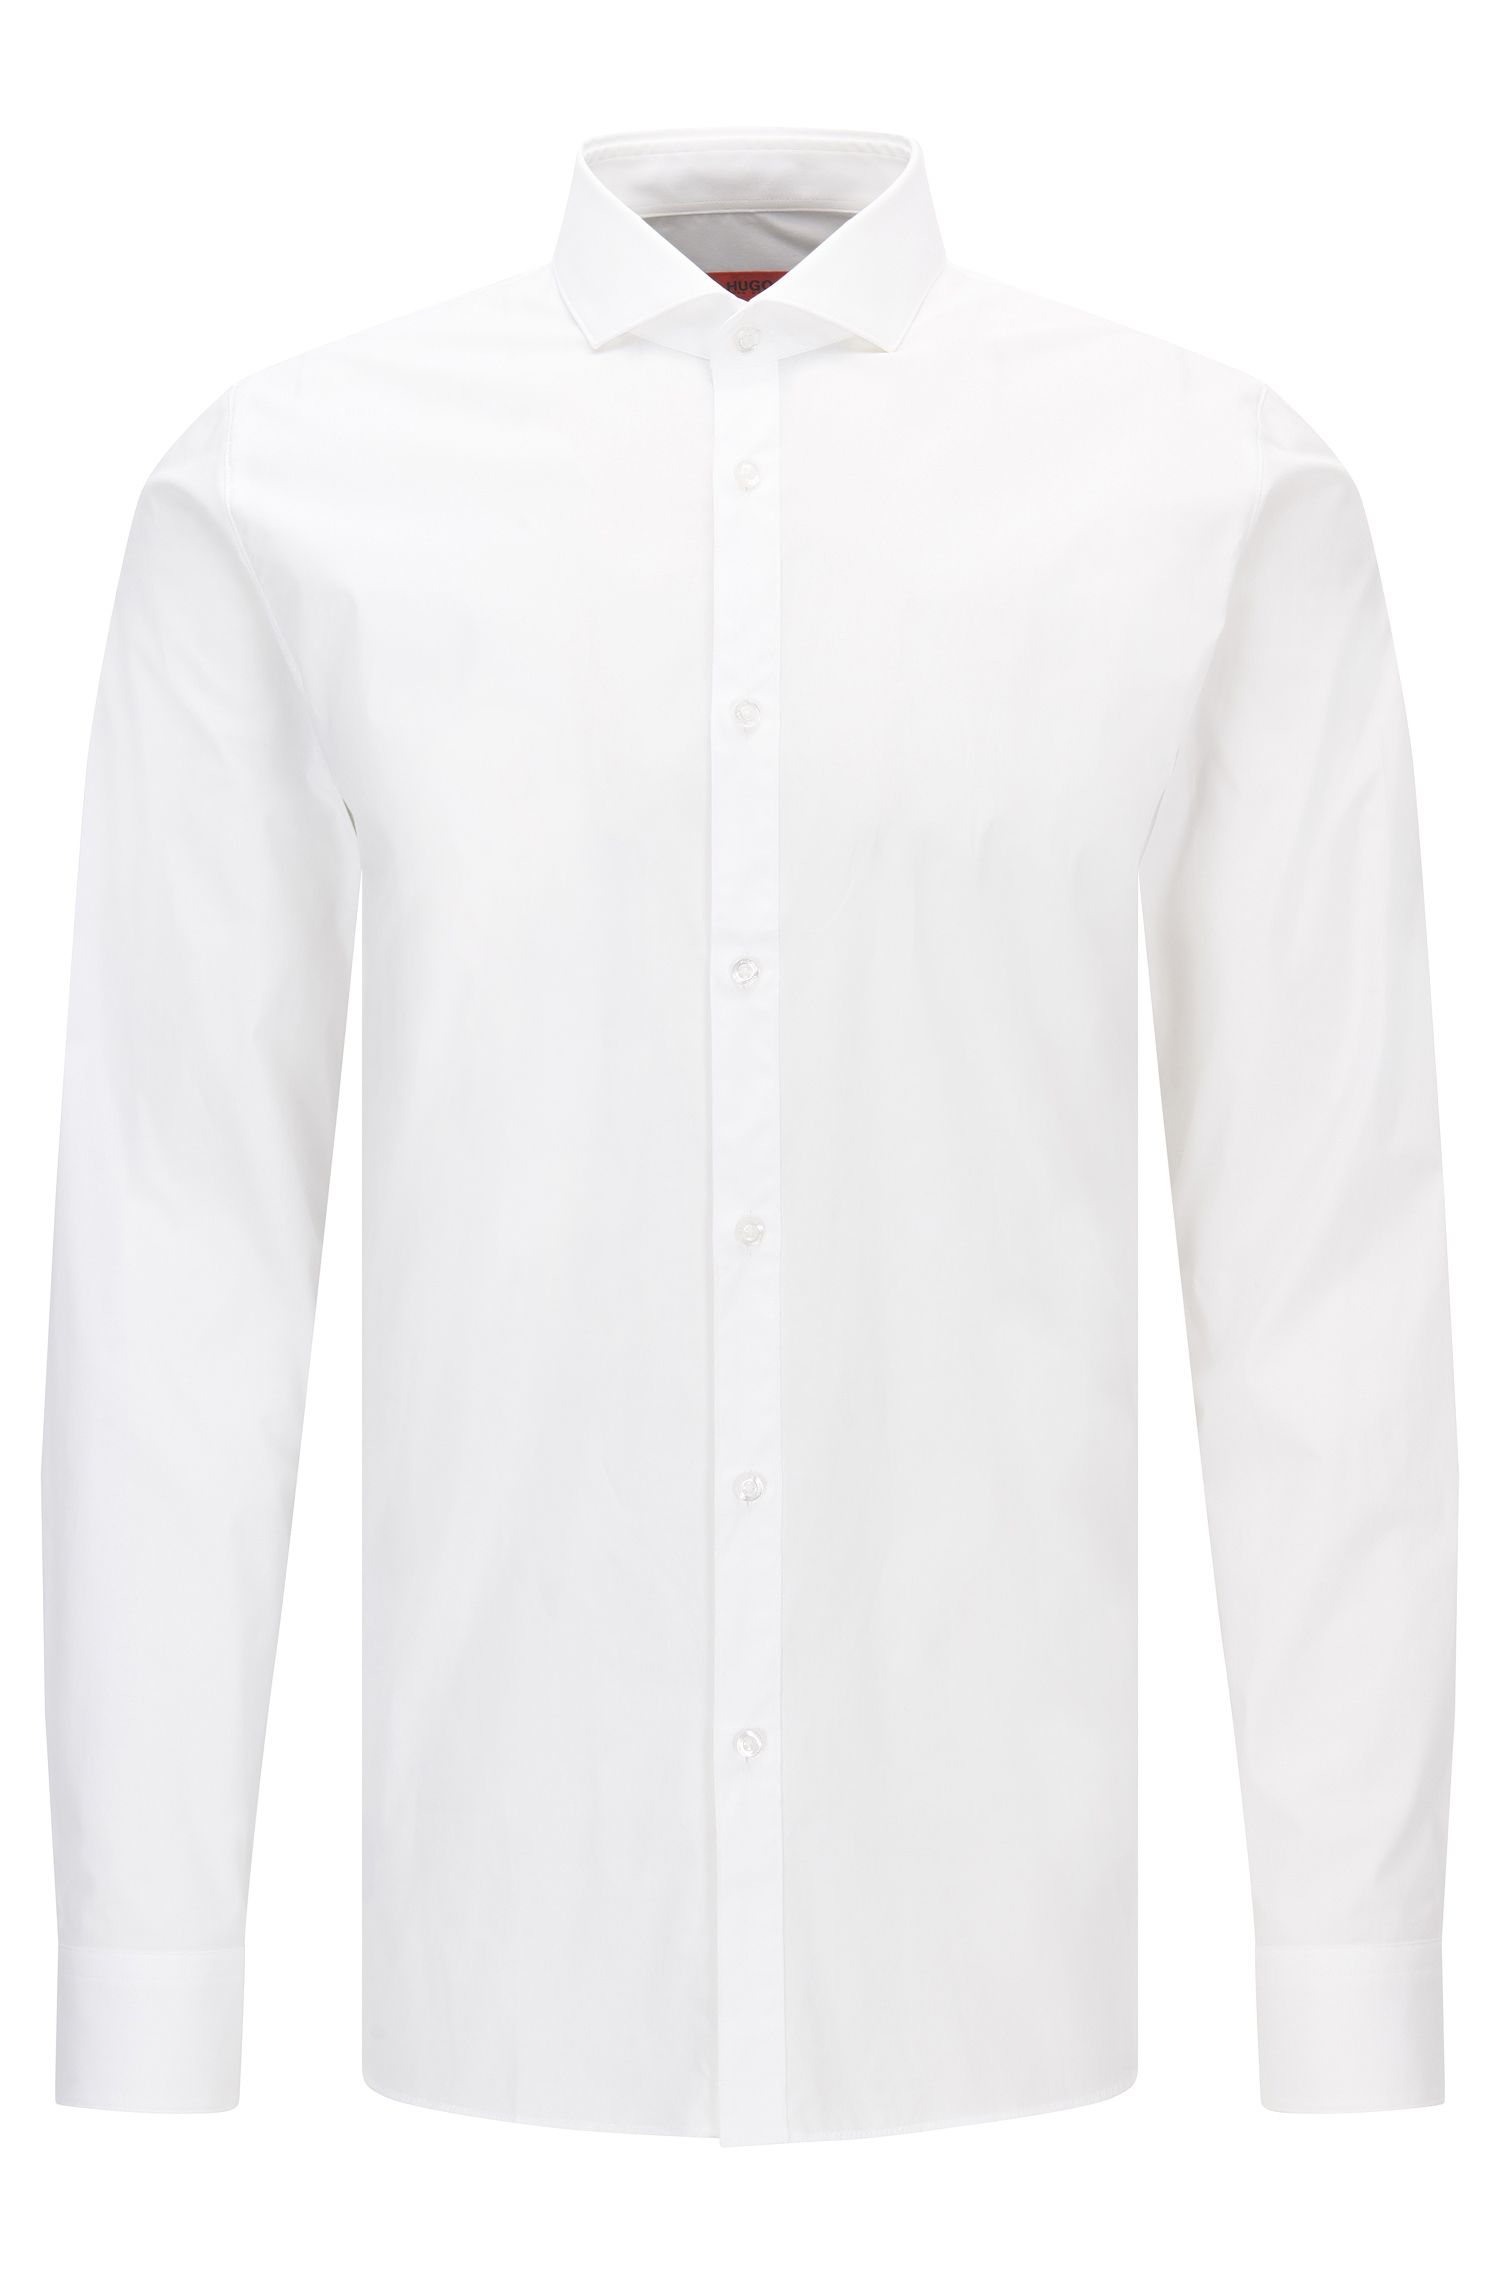 Extra-slim-fit shirt in stretch cotton poplin